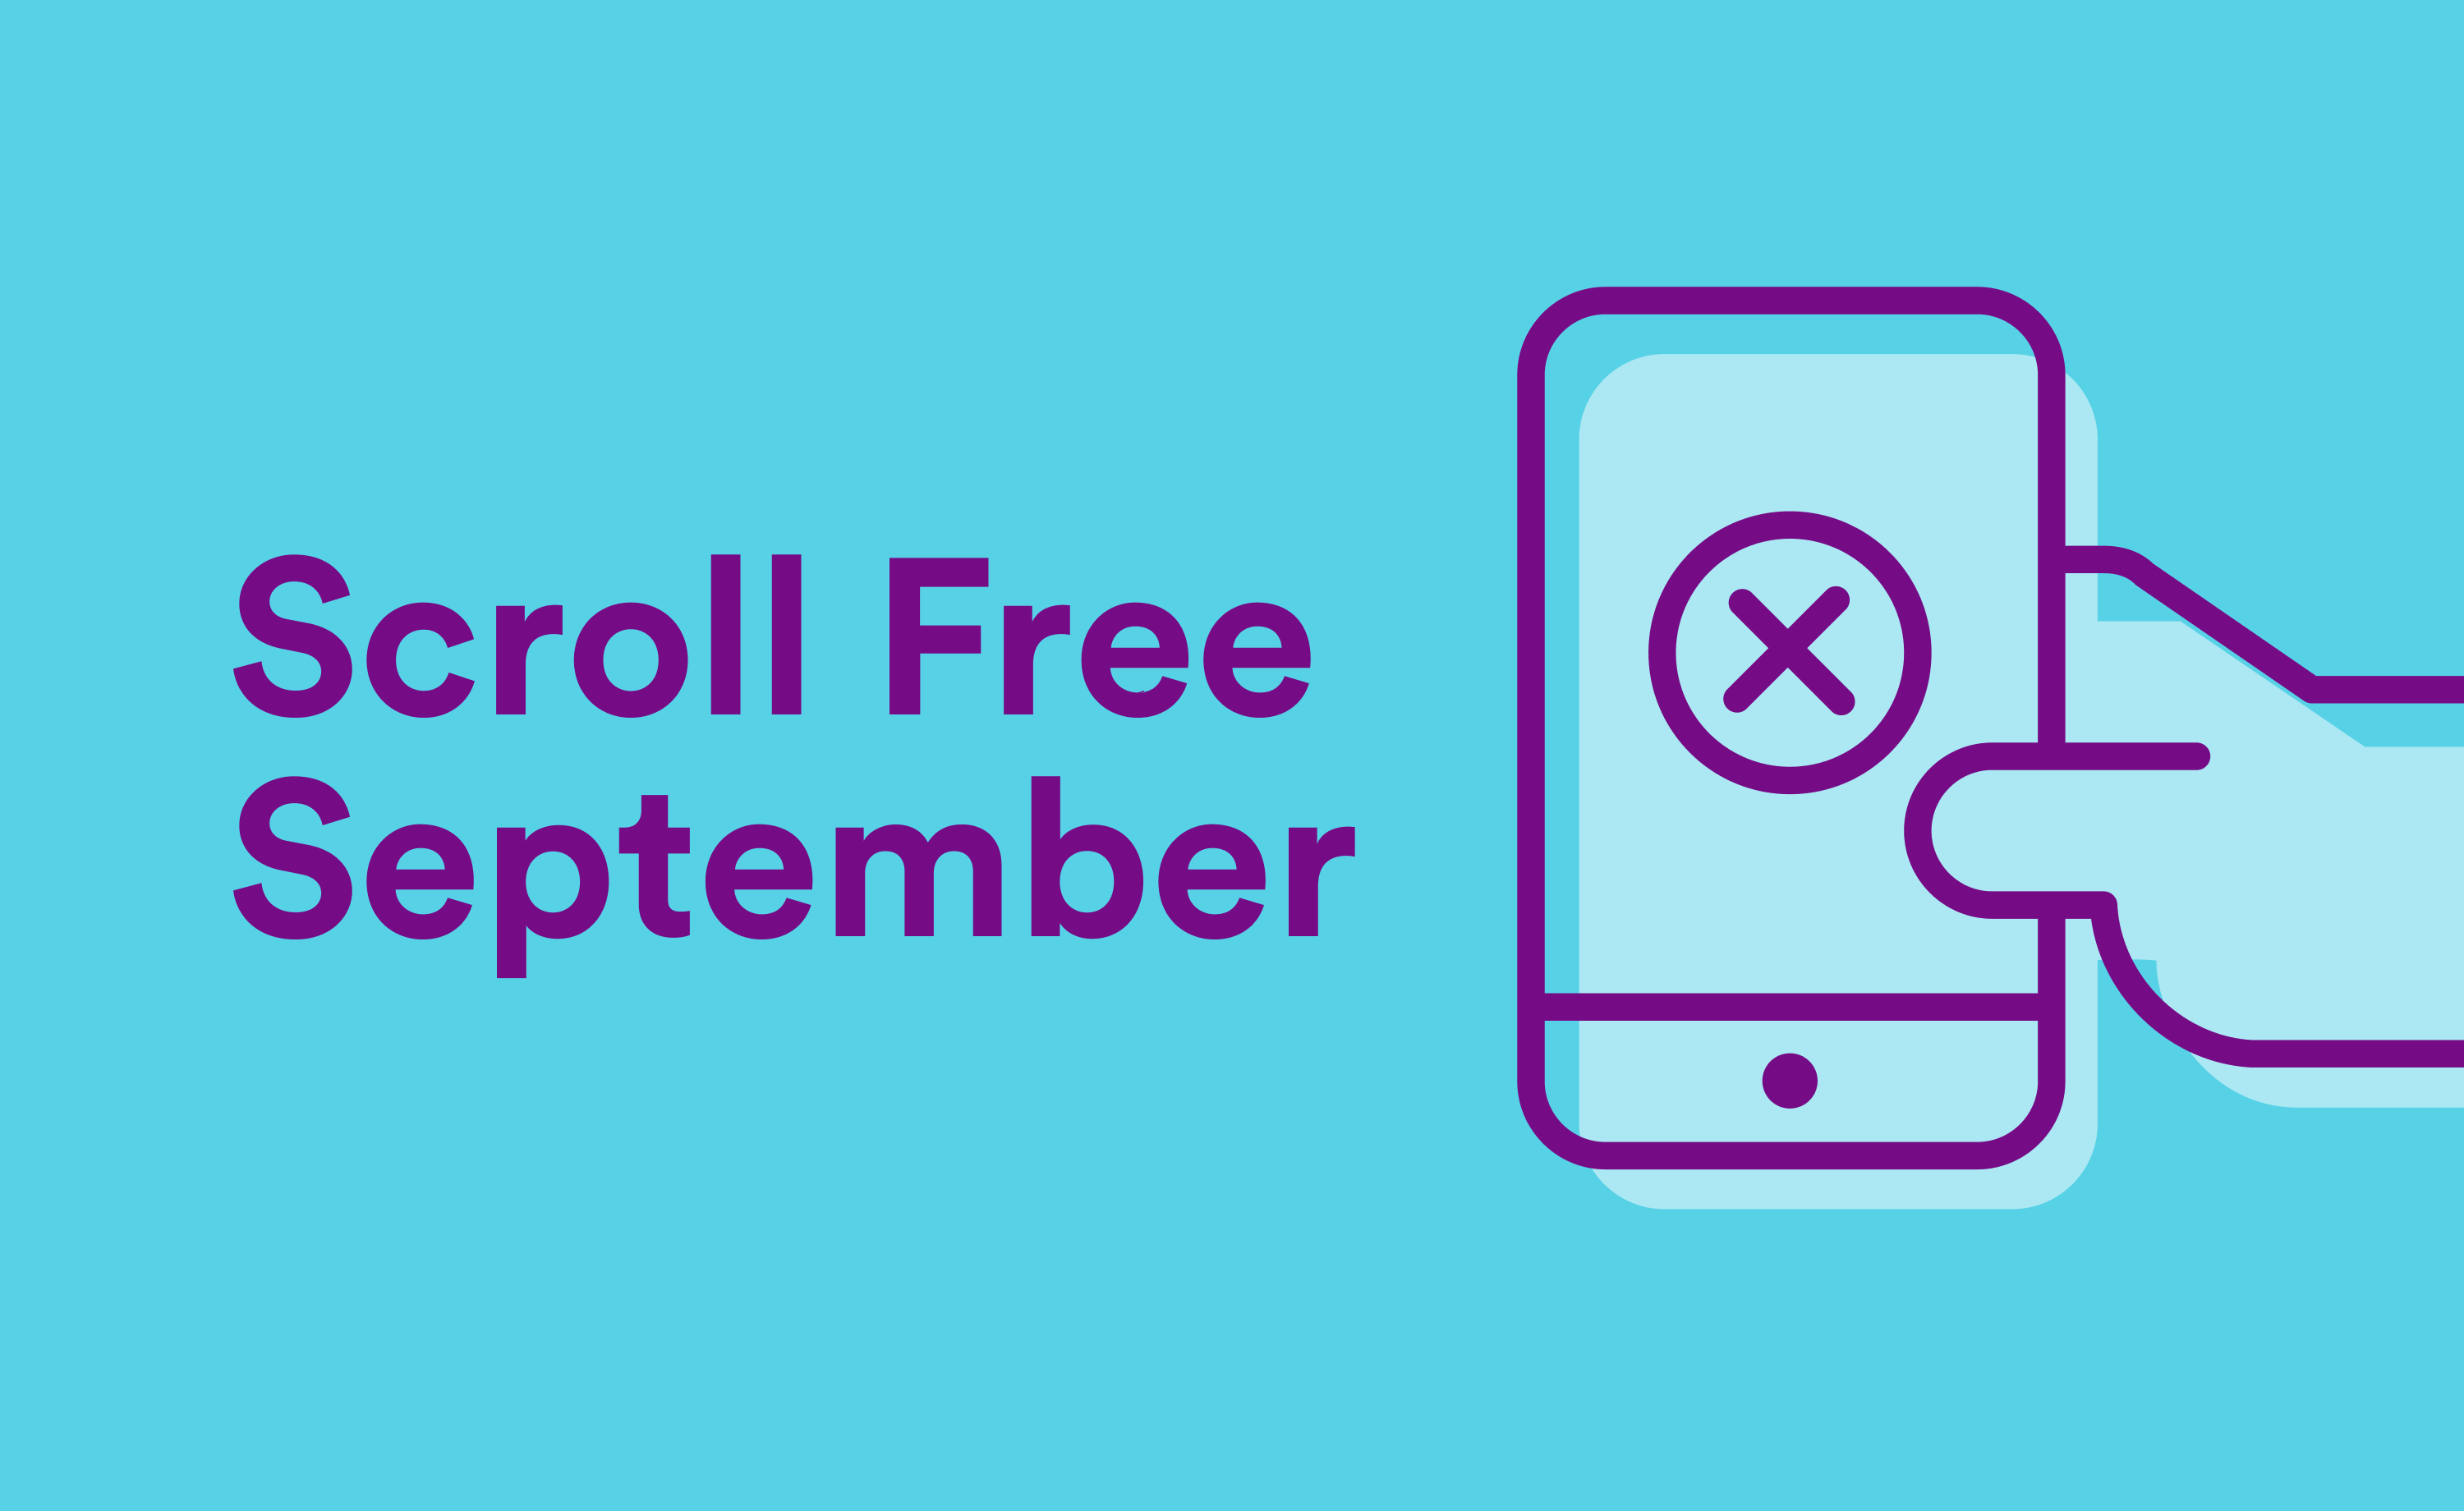 Scroll Free September a